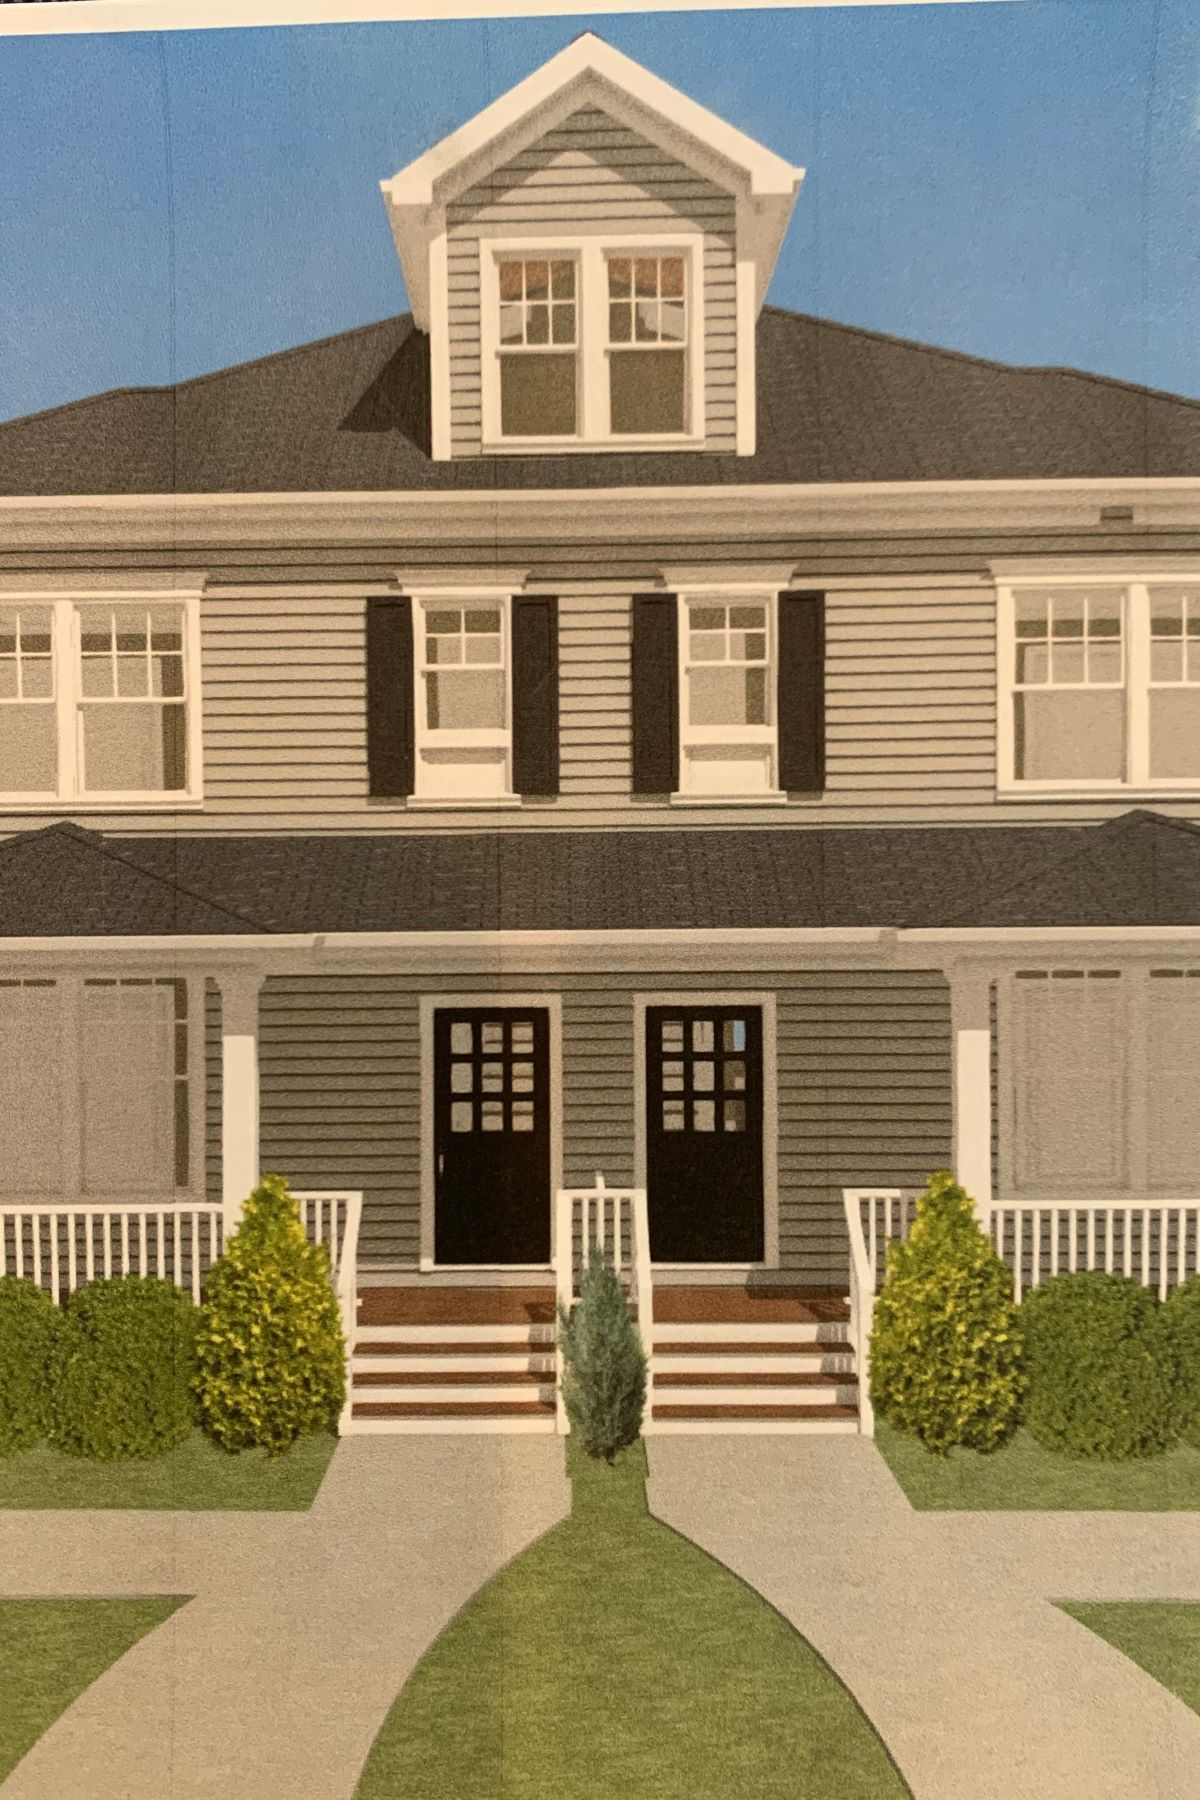 townhouses for Sale at Fabulous New Construction! 110 Linden Lane, Princeton, New Jersey 08540 United States